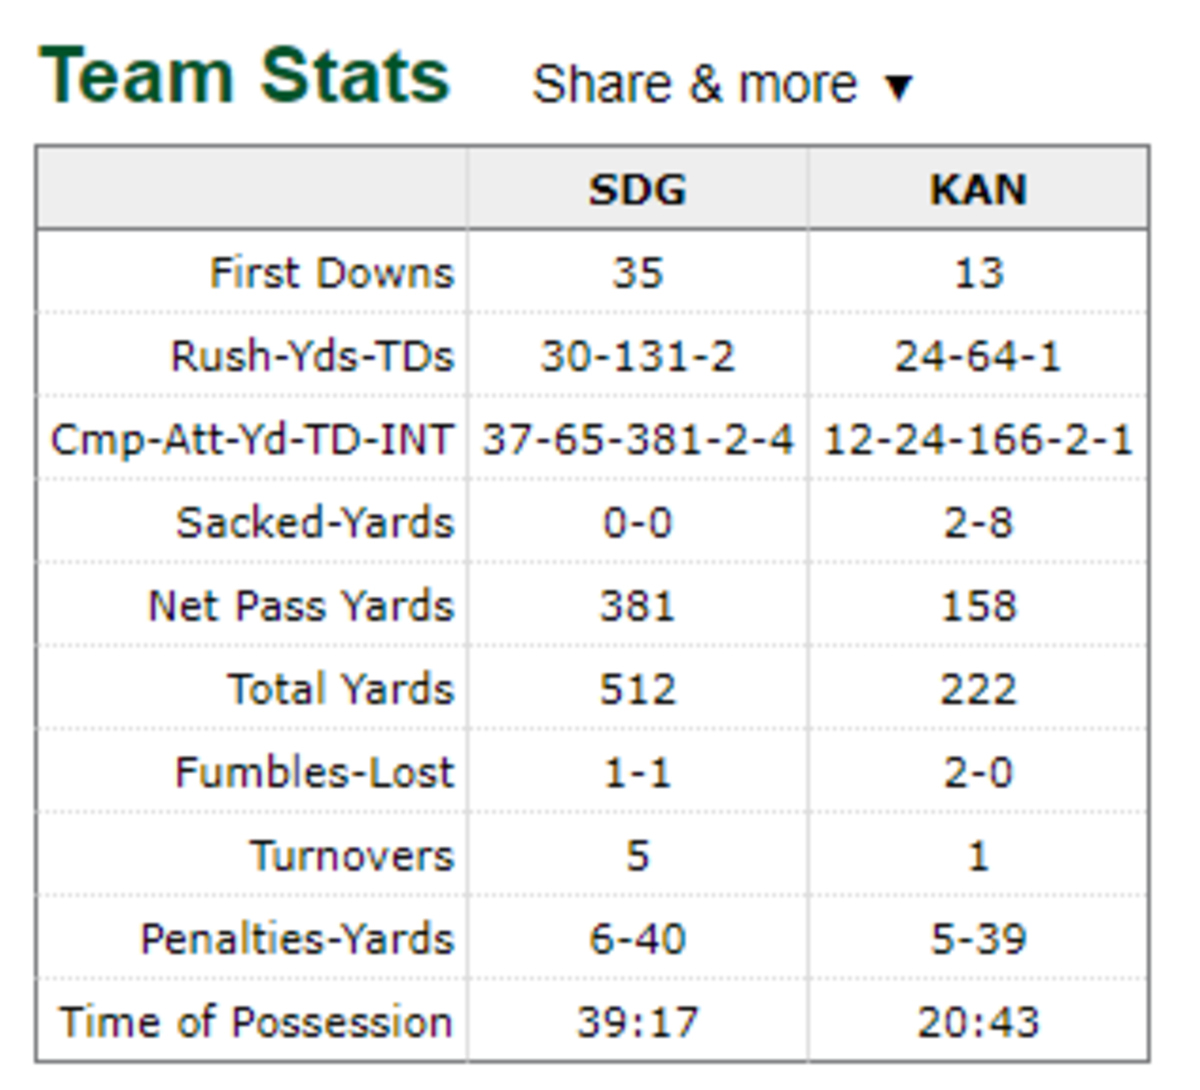 1986 Week 7 team stats for Chiefs vs Chargers